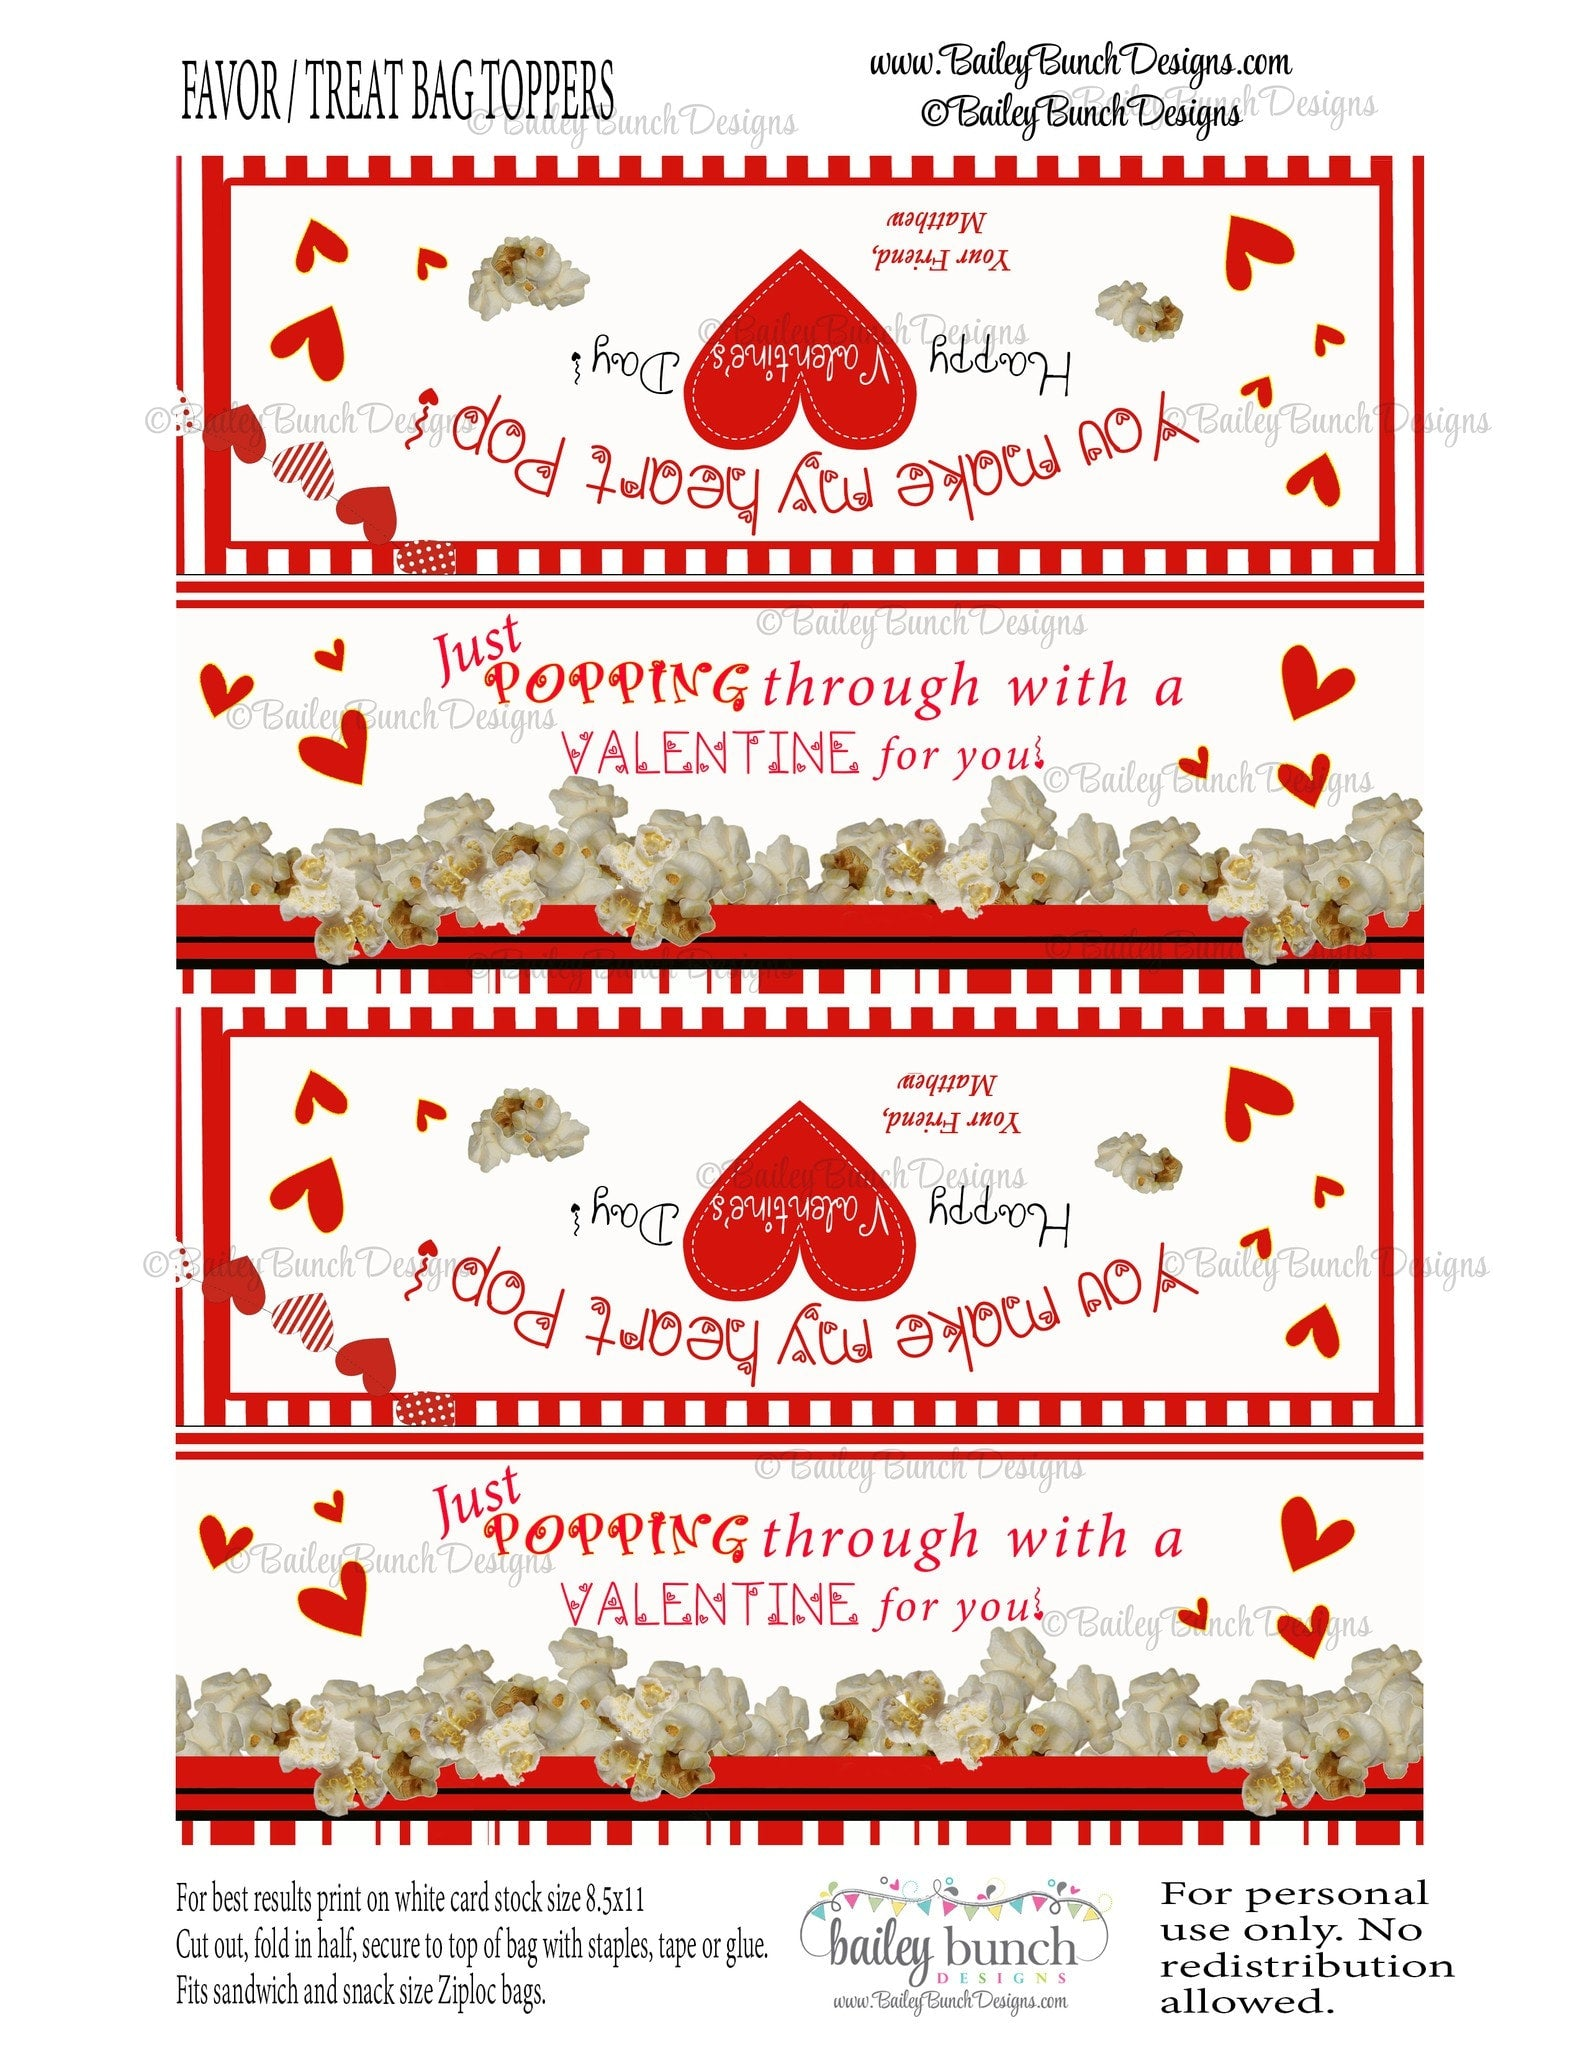 graphic relating to You Make My Heart Pop Valentine Printable referred to as Your self produce my centre Pop Bag Toppers, Valentines VDAYPOPCORN0520